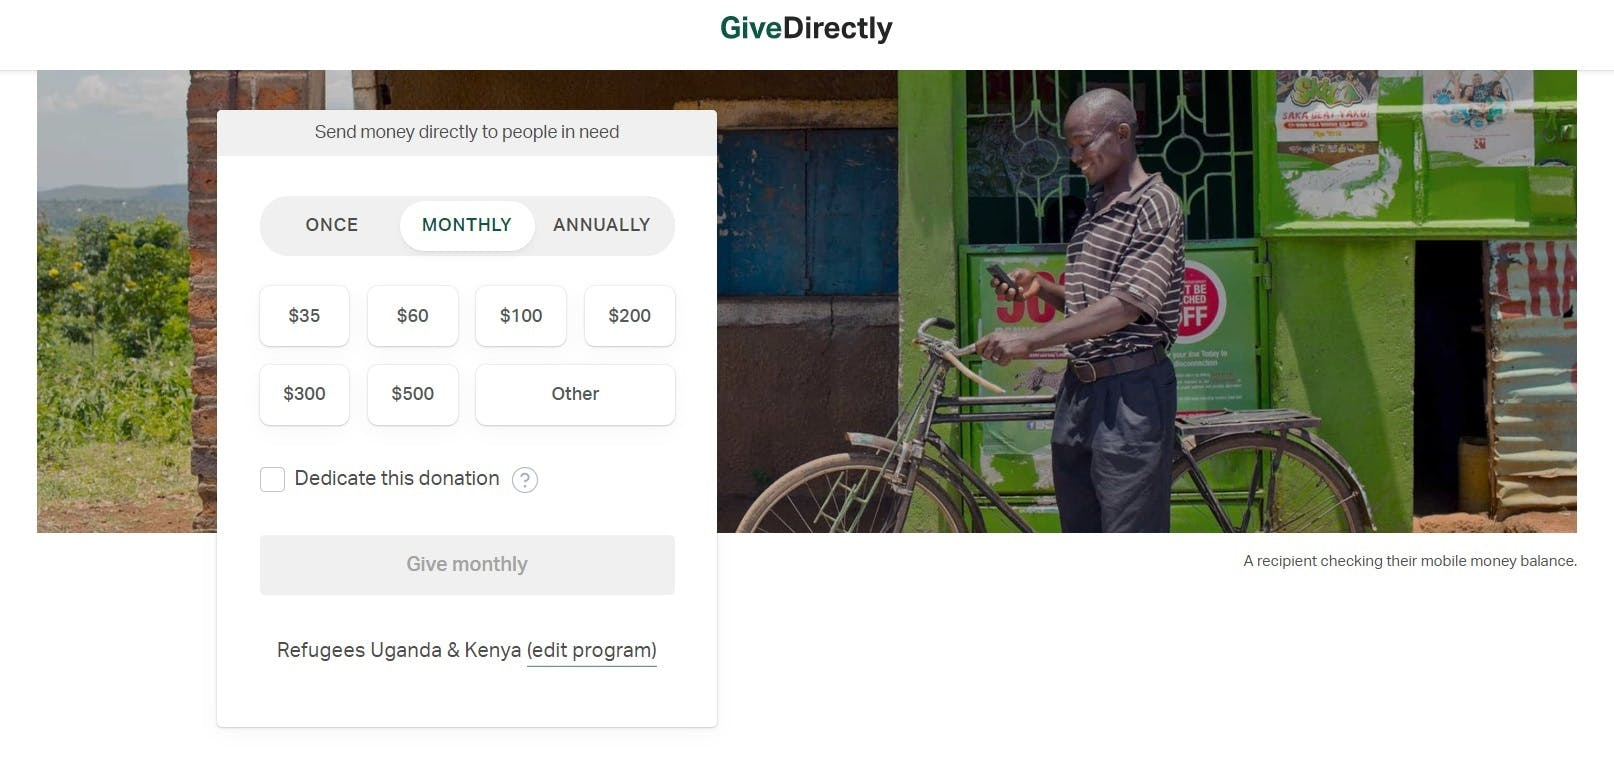 GiveDirectly donation recipient checking their mobile money balance